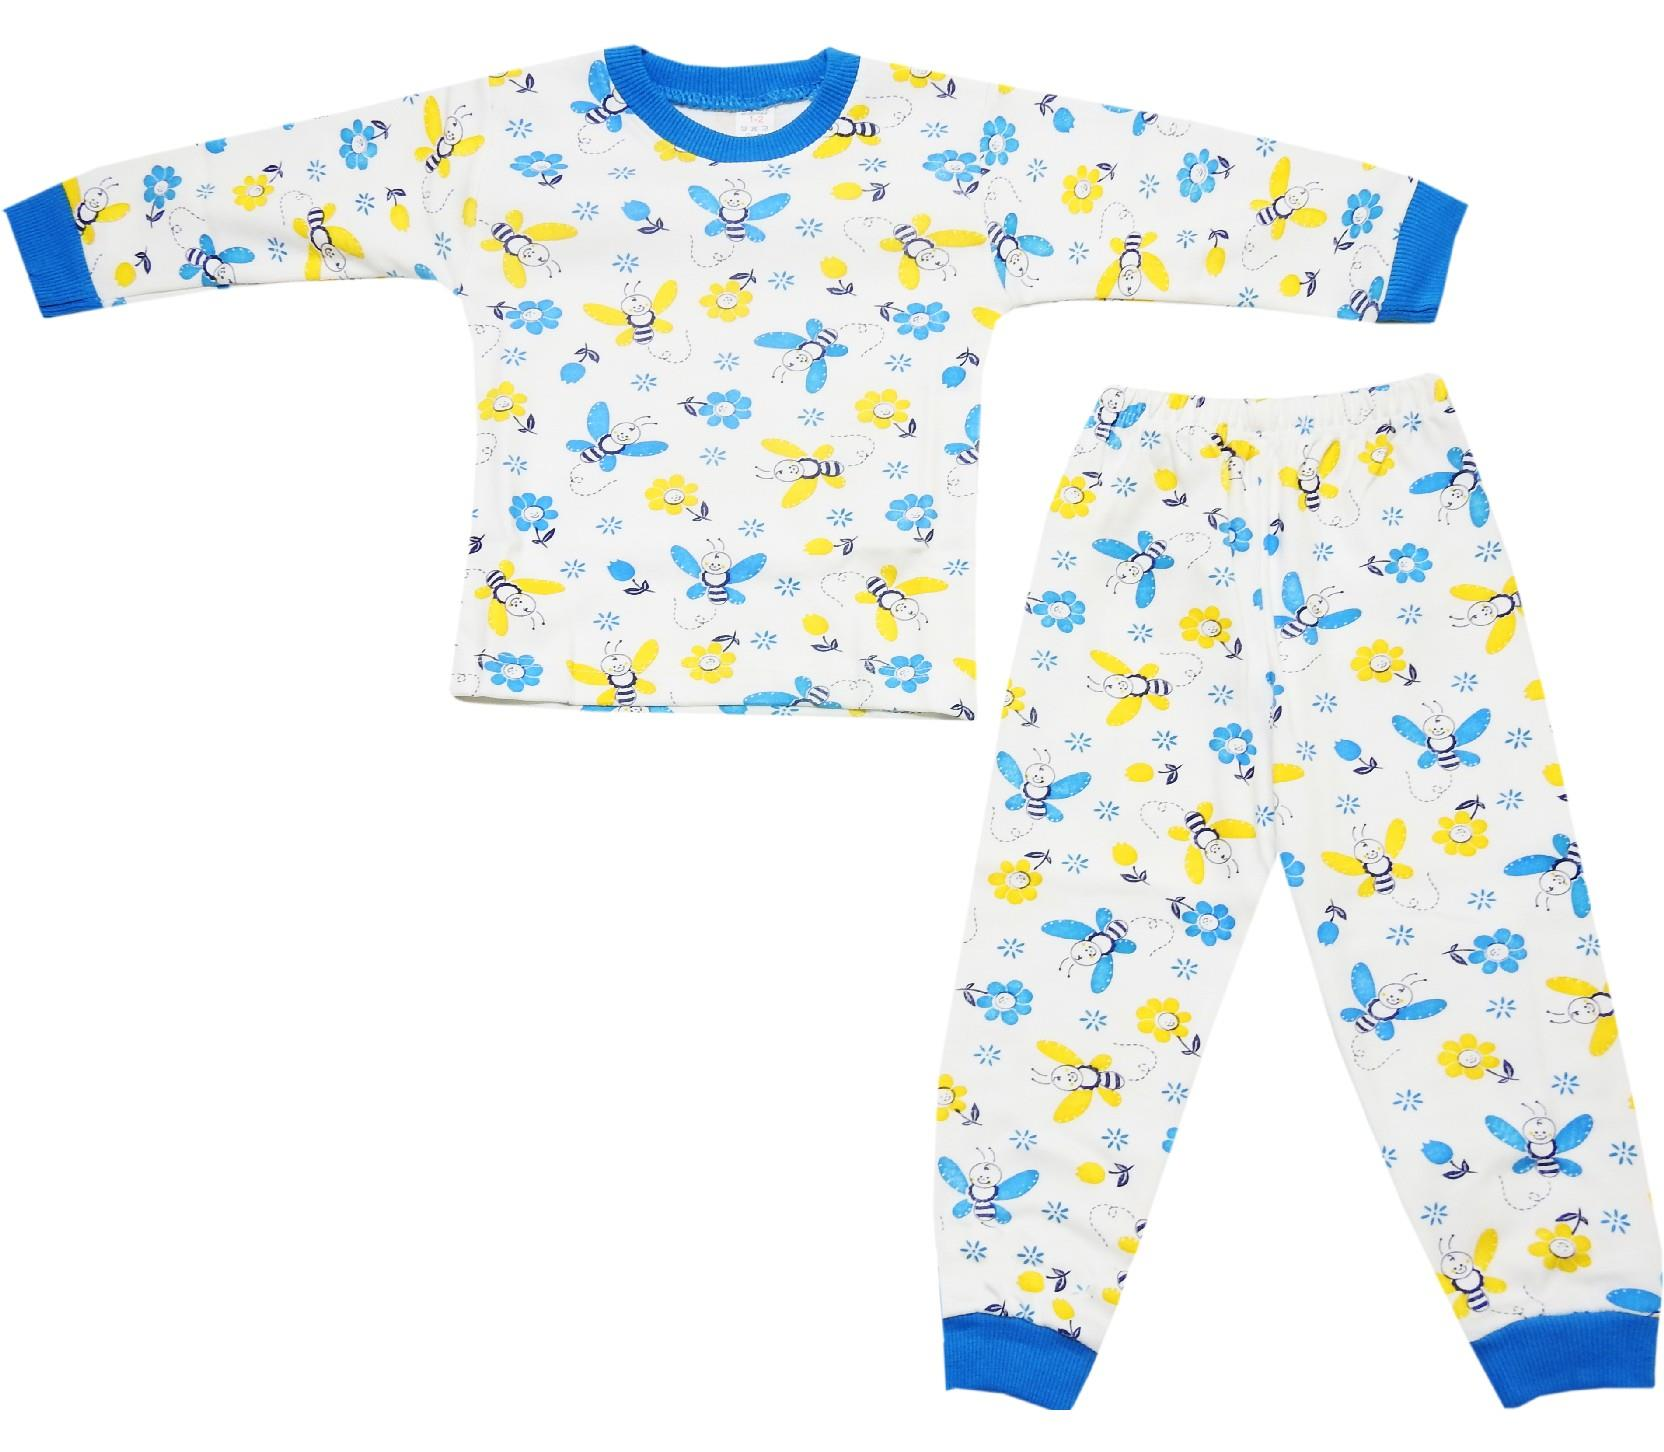 001 wholesale patterned pyjama for children (2-3-4 age)